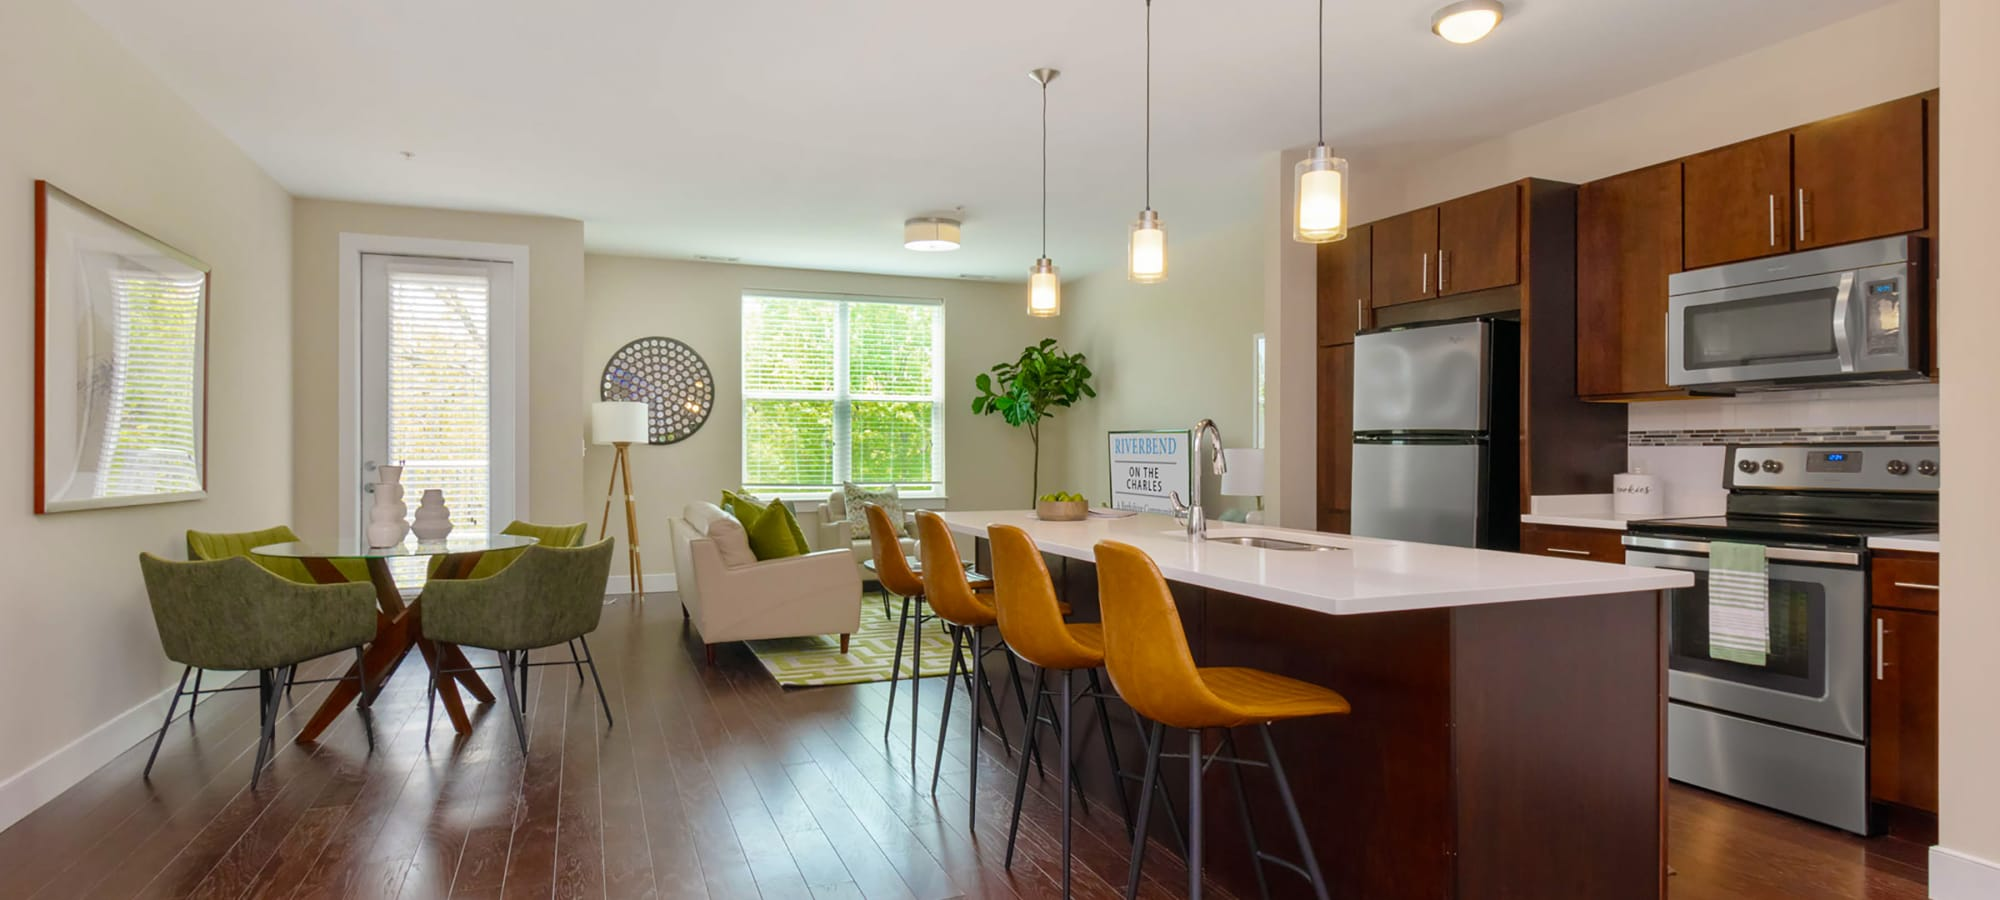 Open floor plans at Riverbend on the Charles in Watertown, Massachusetts